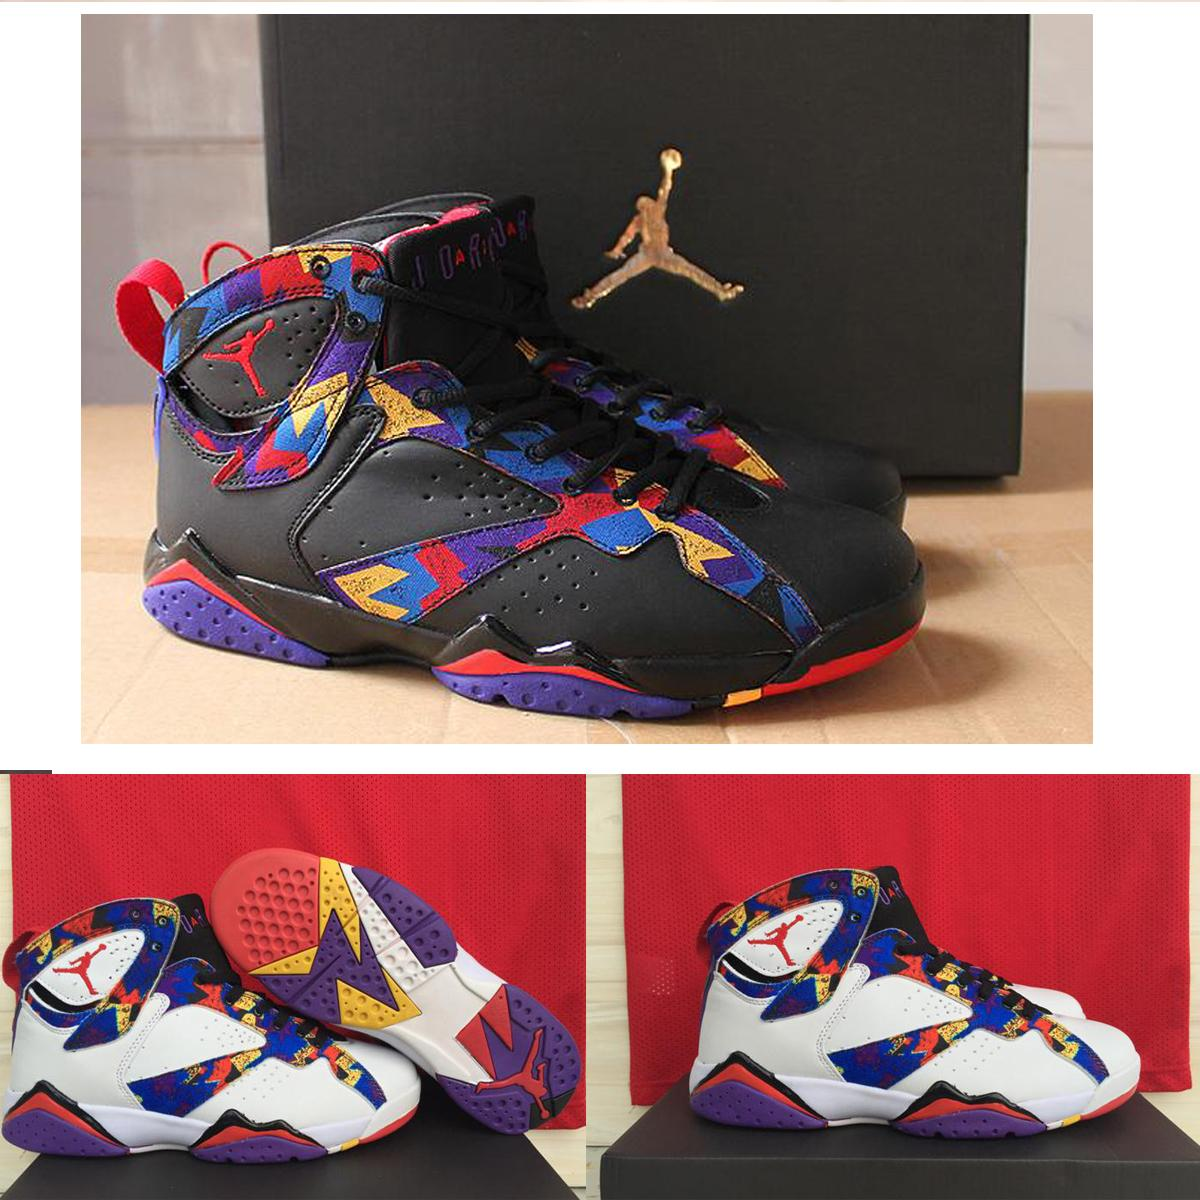 Nike Air Jordan 7 Olympic Retro Mens Basketball Shoes ,Wholesale Cheap  Original Basketball Sneakers Shoes ,Jordan Shoes,Black White Cheap Shoes 4e  ...